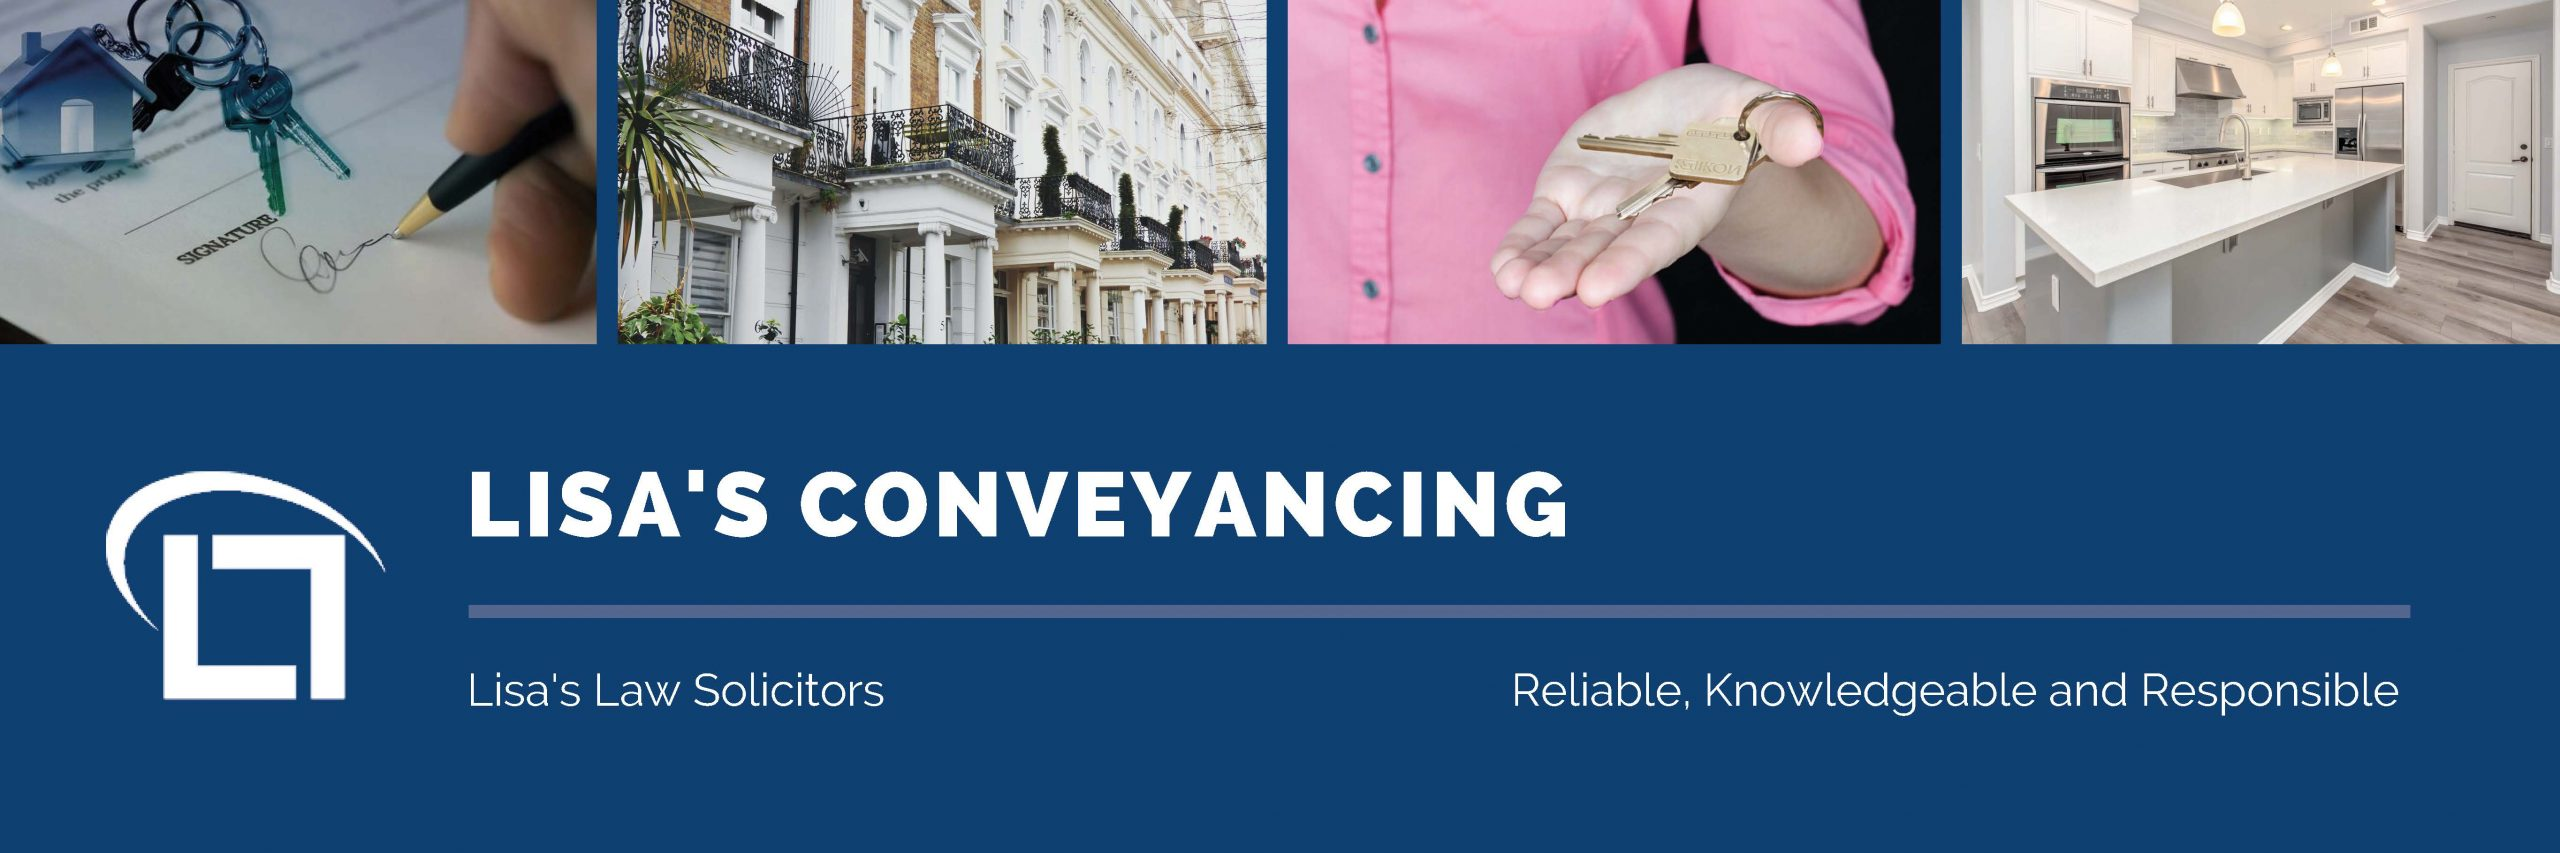 https://lisaslaw.co.uk/wp-content/uploads/2020/09/Lisas-Conveyancing--scaled.jpg